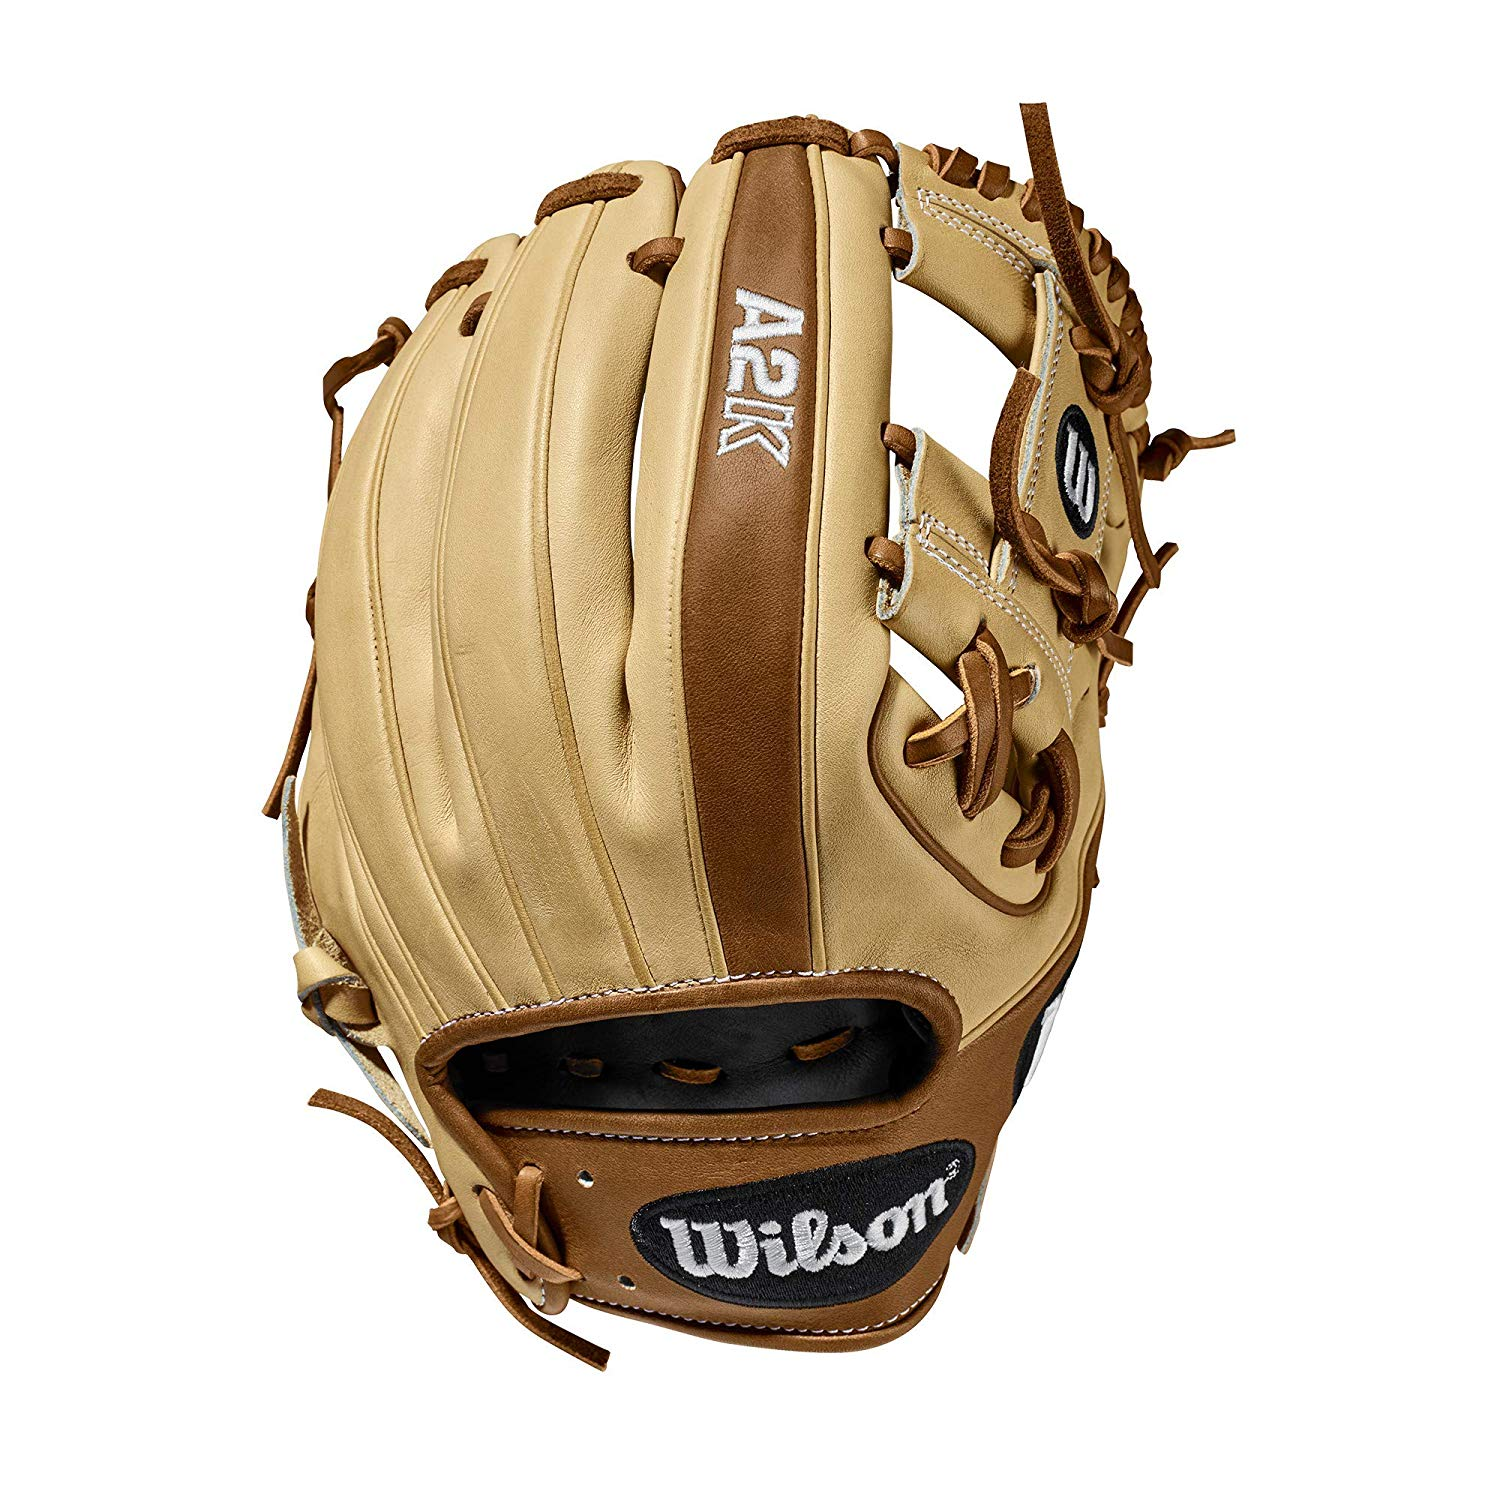 H-Web Design and three times more shaping to help reduce break-in time Blonde and Saddle Tan Pro Stock Select Leather, chosen for its consistency and flawlessness Rolled Dual Welting for long-lasting shape and quicker break-in Double Palm Construction providing maximum pocket stability.